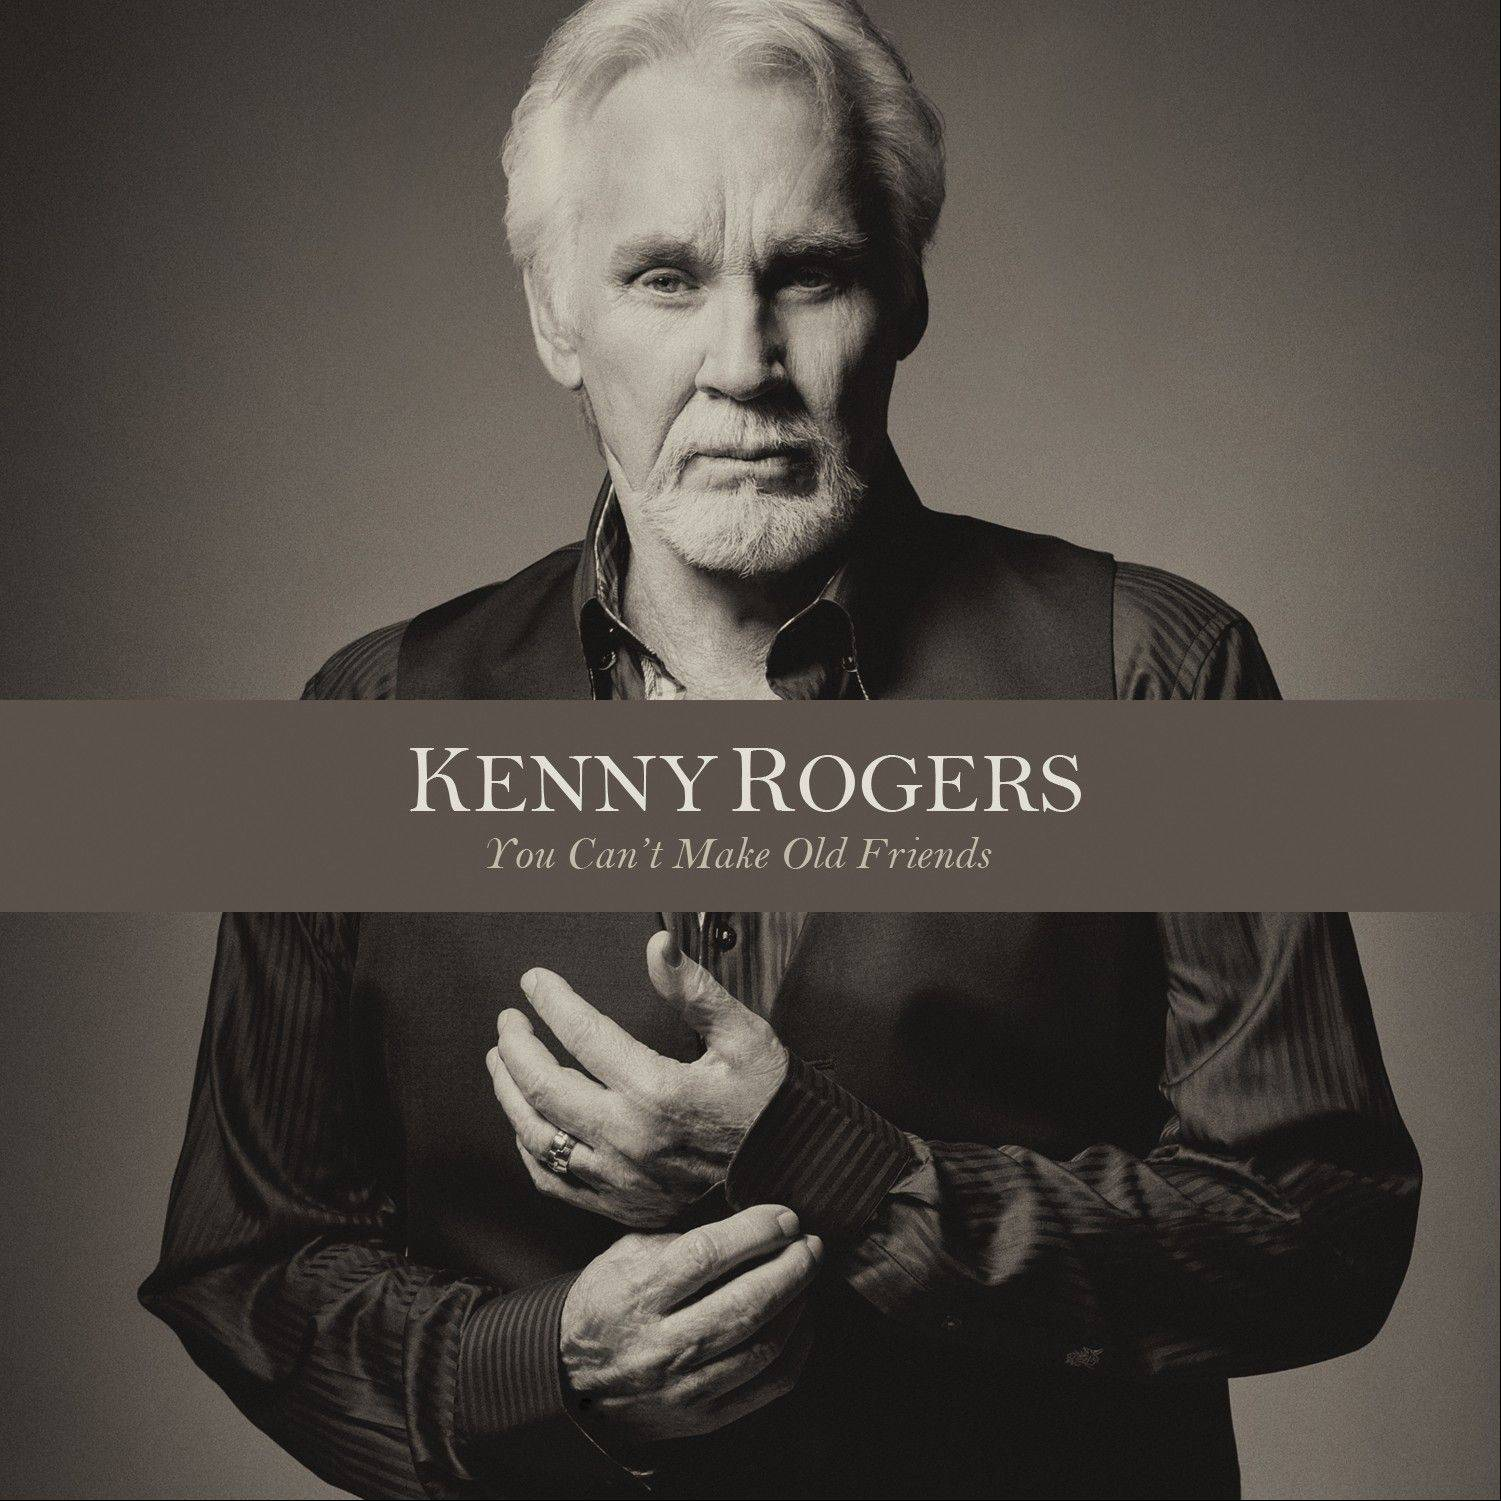 """You Can't Make Old Friends"" by Kenny Rogers"